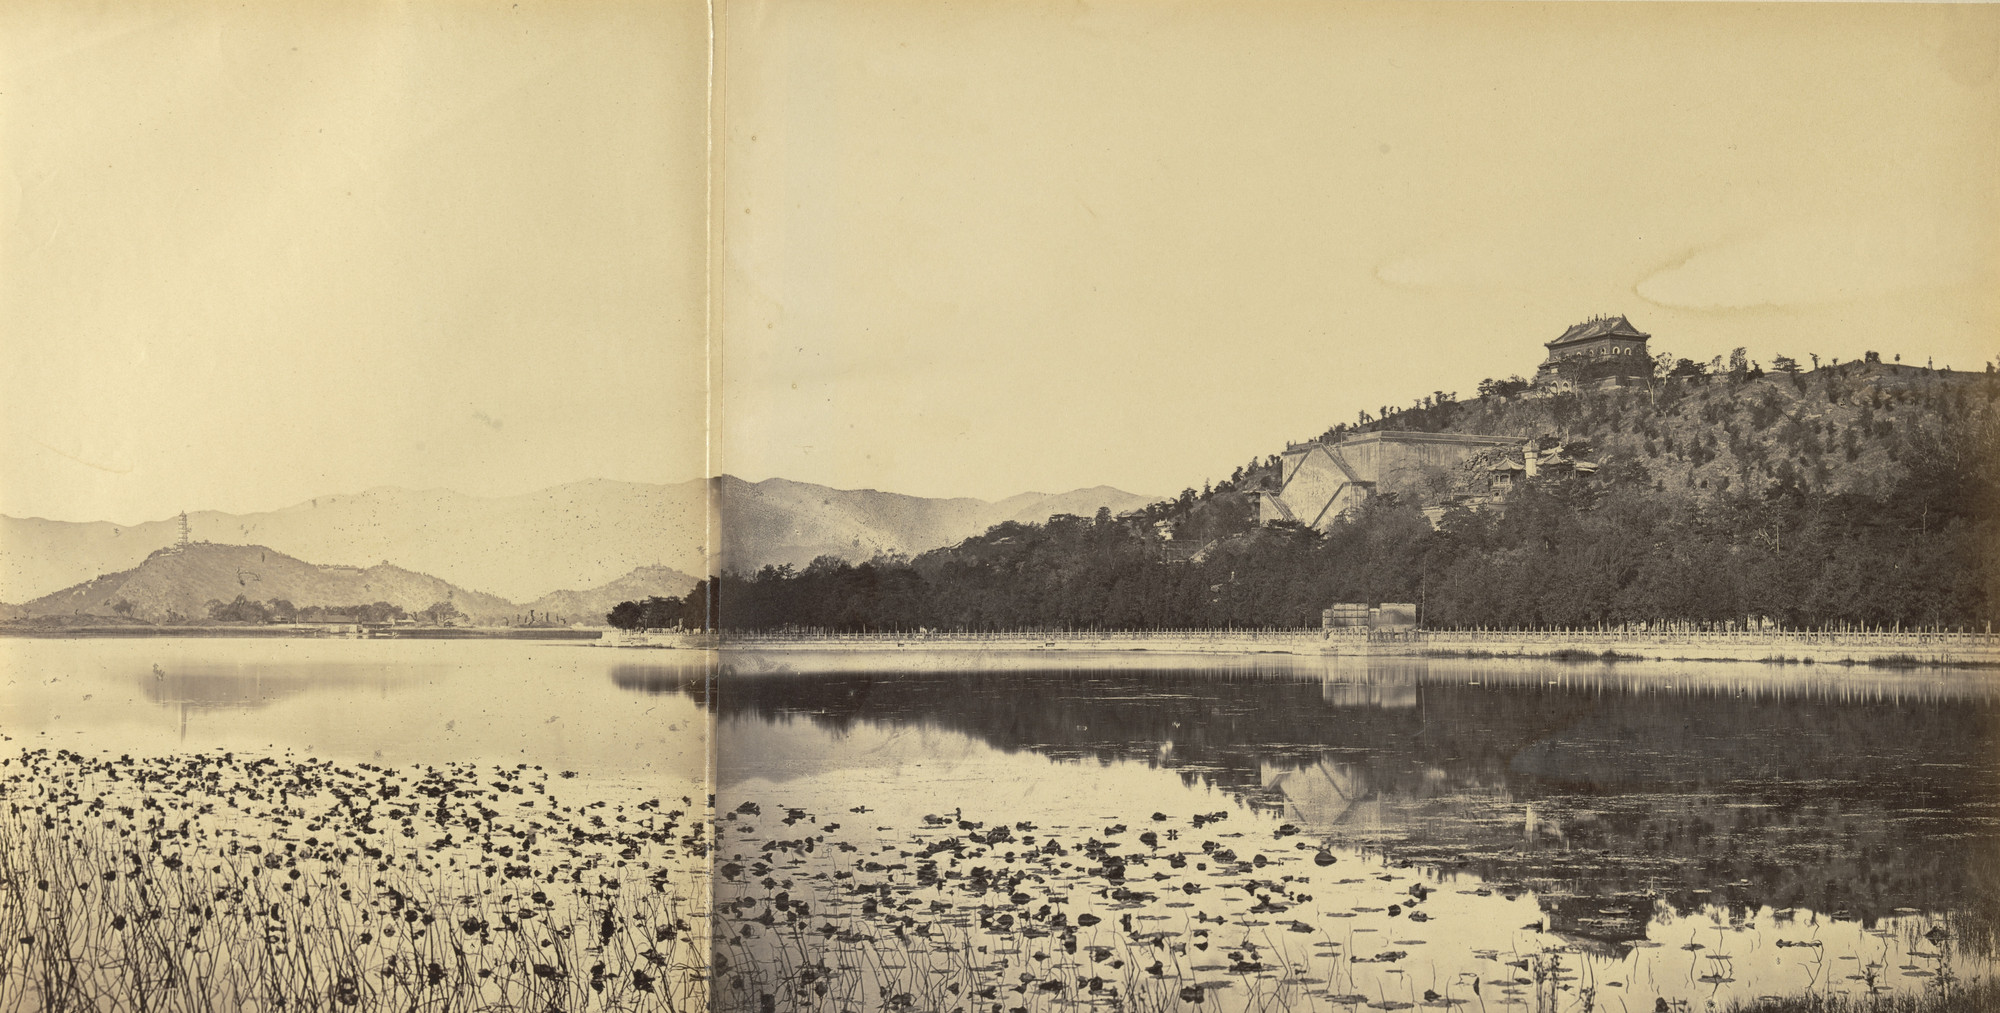 Felice Beato. View of the Imperial Summer Palace Yuen Ming Yuen After the Burning, Taken from the Lake, Peking. October 1860